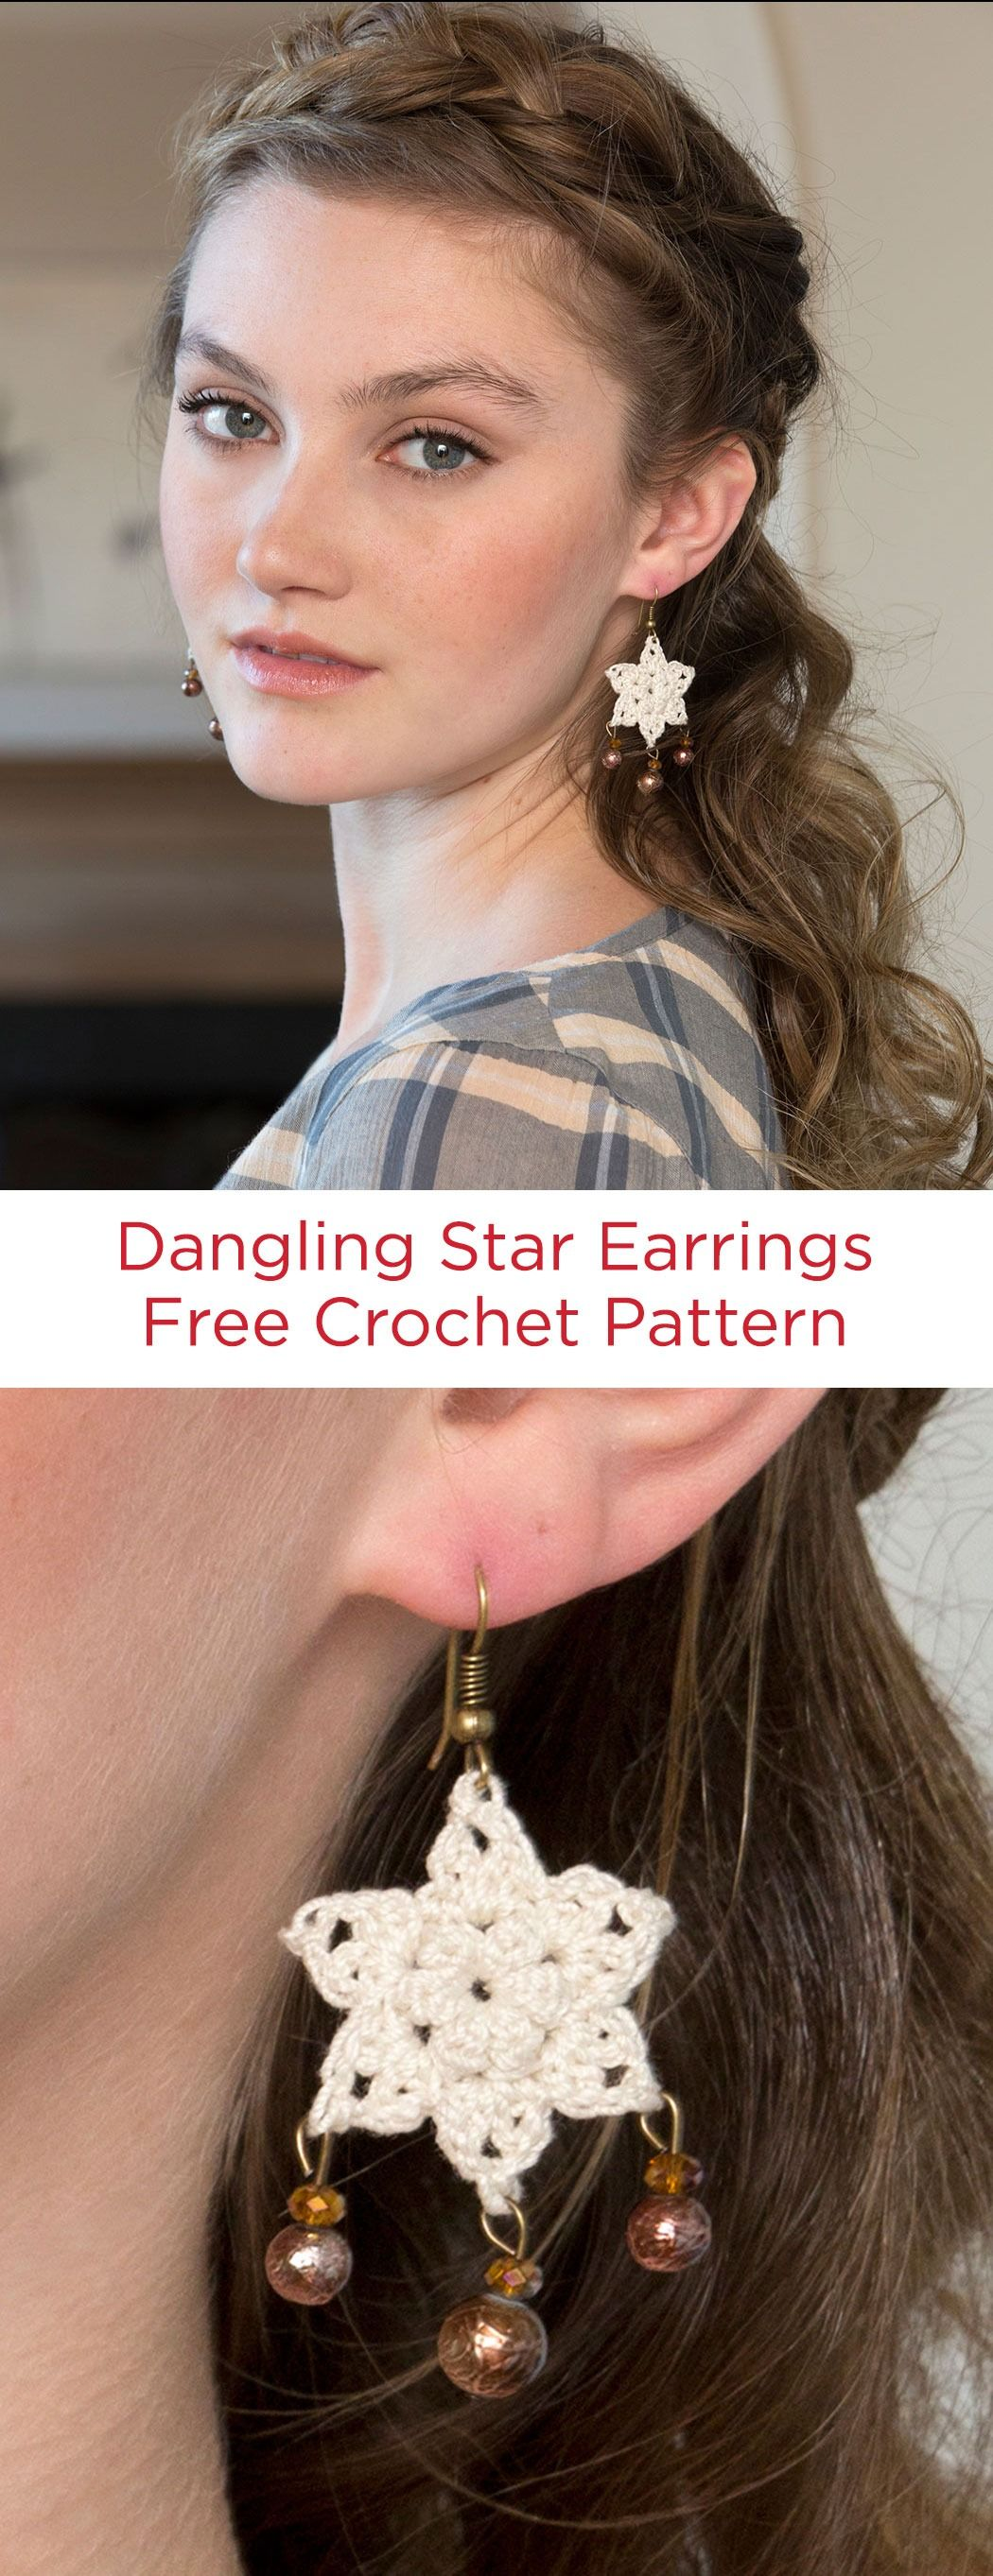 Dangling Star Earrings Free Crochet Pattern in Red Heart Crochet Thread -- Add dangling beads to these stunning crocheted earrings and give them extra appeal! Need a certain color for your outfit? Check out all the colors available in size 10 crochet thread.